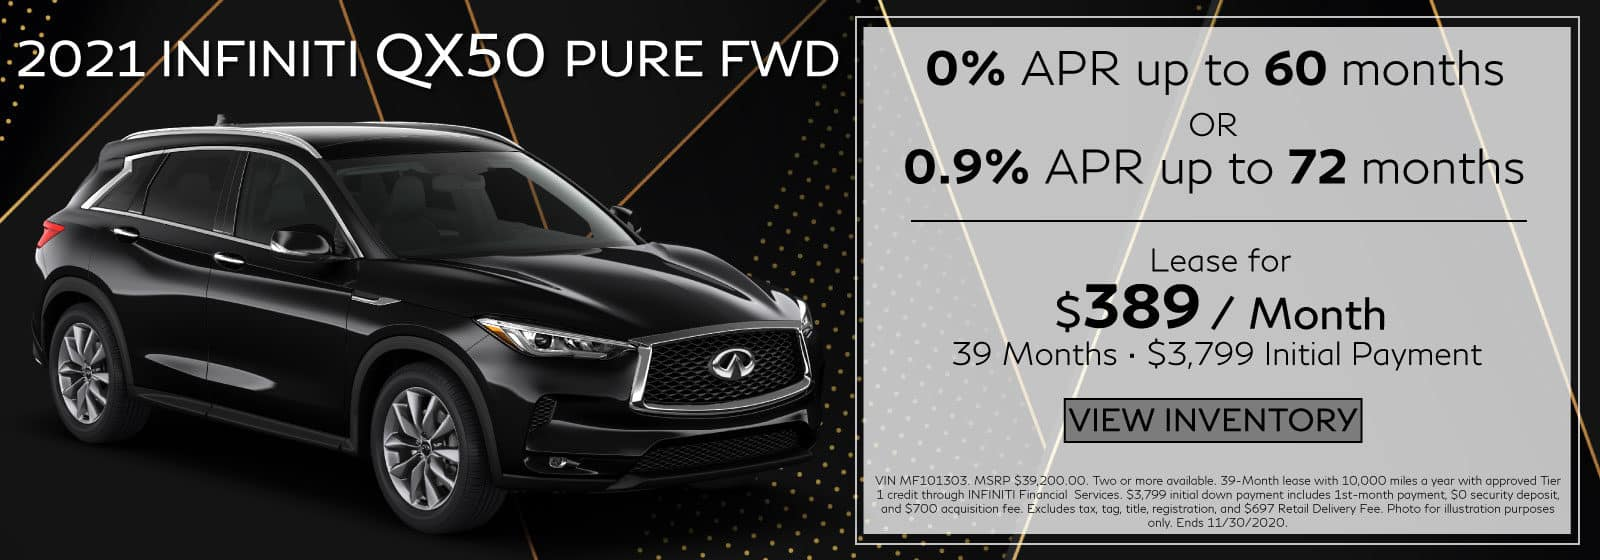 2021 QX50 PURE FWD. $389/mo for 39 months. $3,799 Initial Payment.